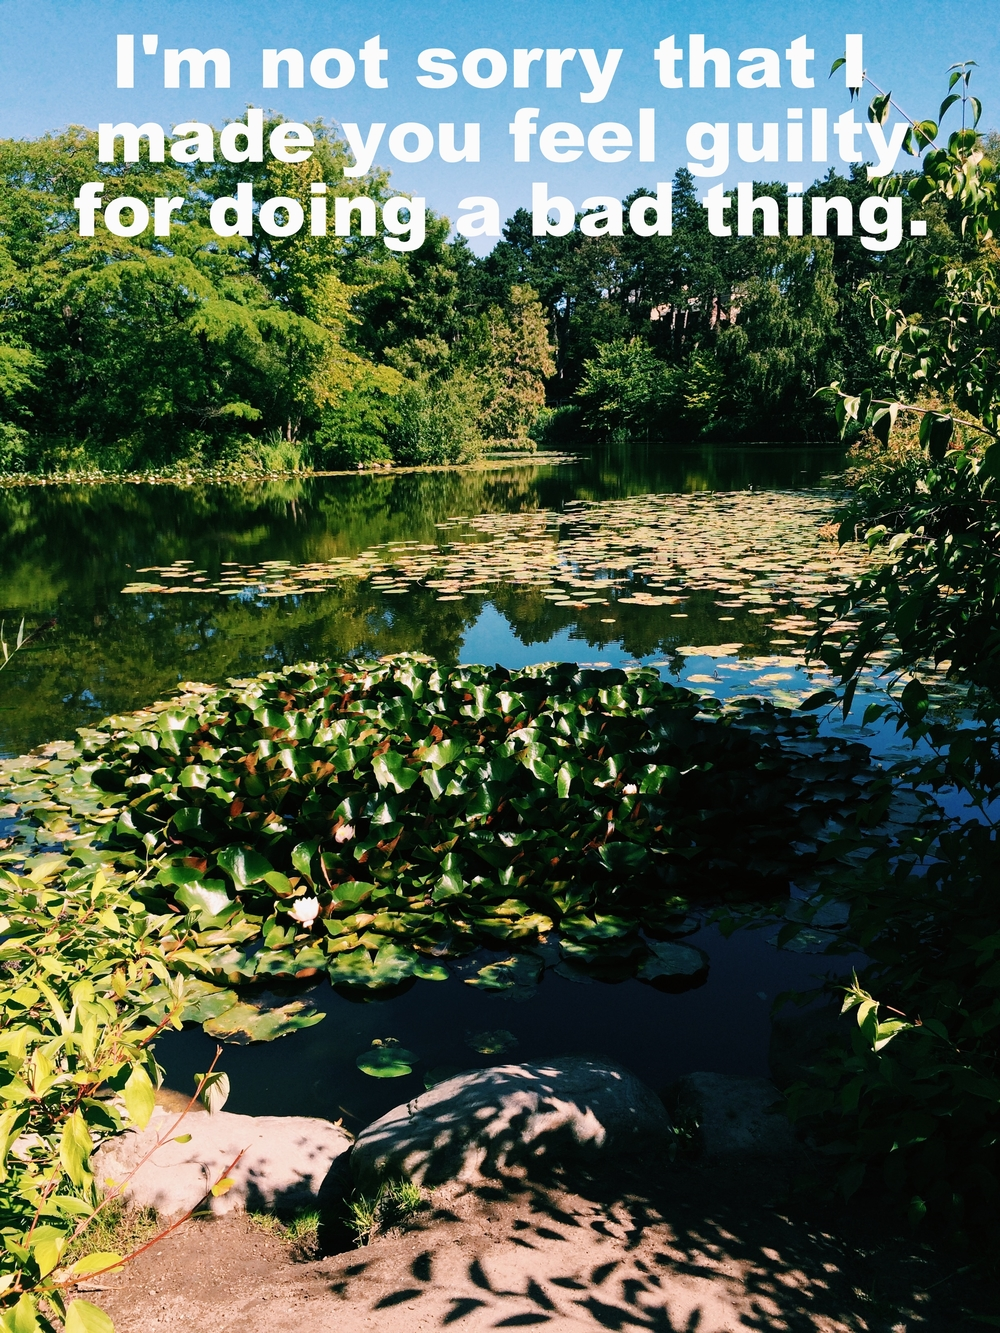 "Anonymous April 26 2016 Image of a pond with lily pads and water plants in the sunlight. Trees are reflected in the water. ""I'm not sorry that I made you feel guilty for doing a bad thing"" is overlaid."